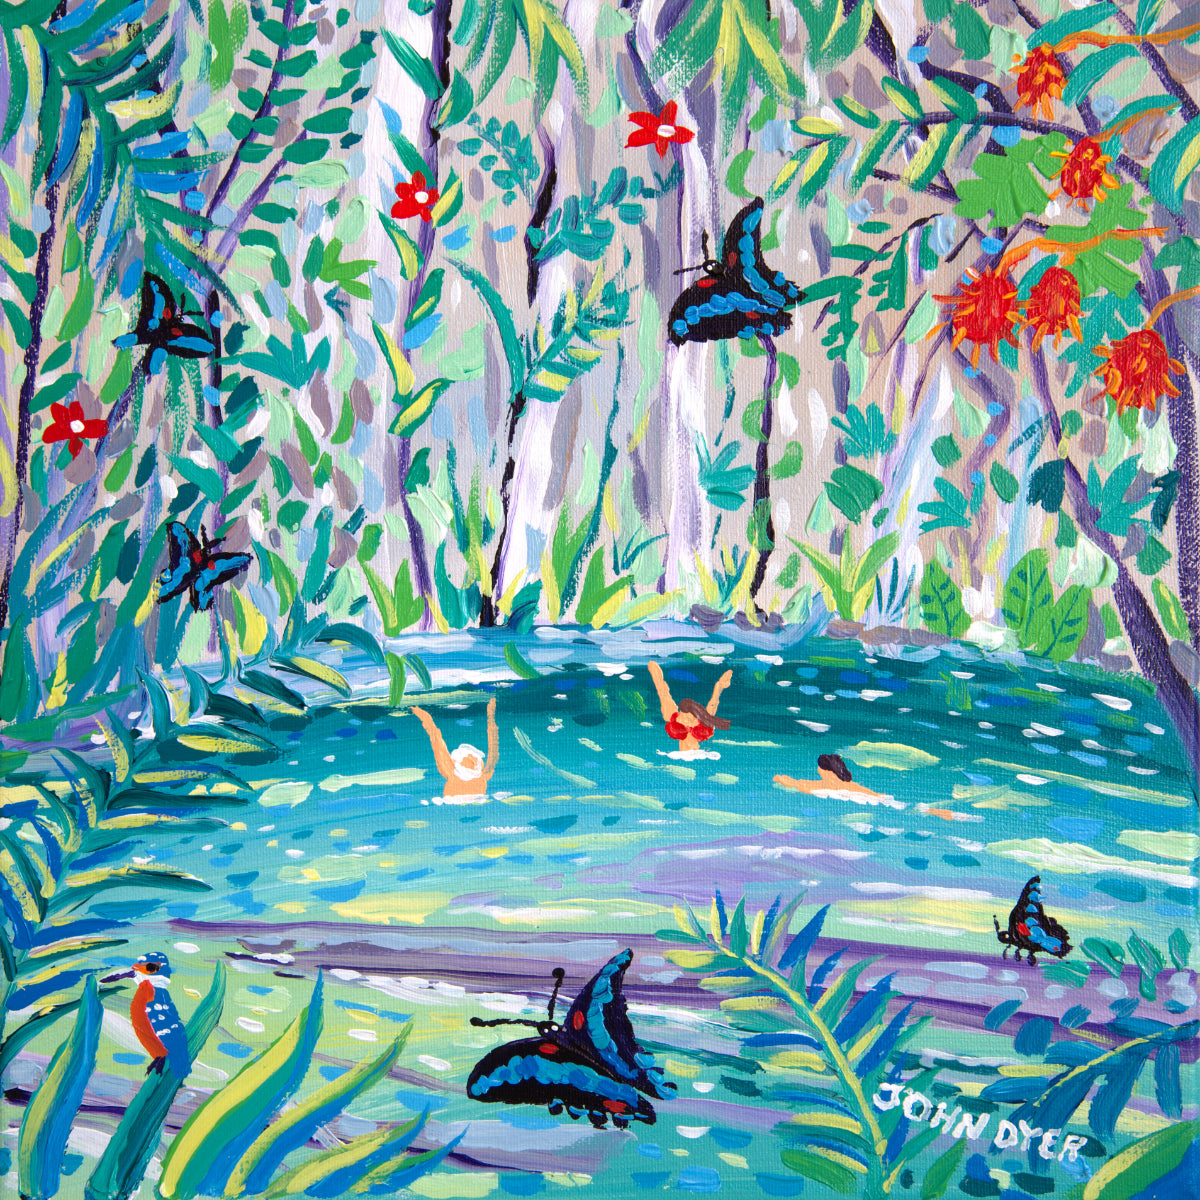 John Dyer Painting. Clearwater Cave Swimmers, Mulu, Borneo